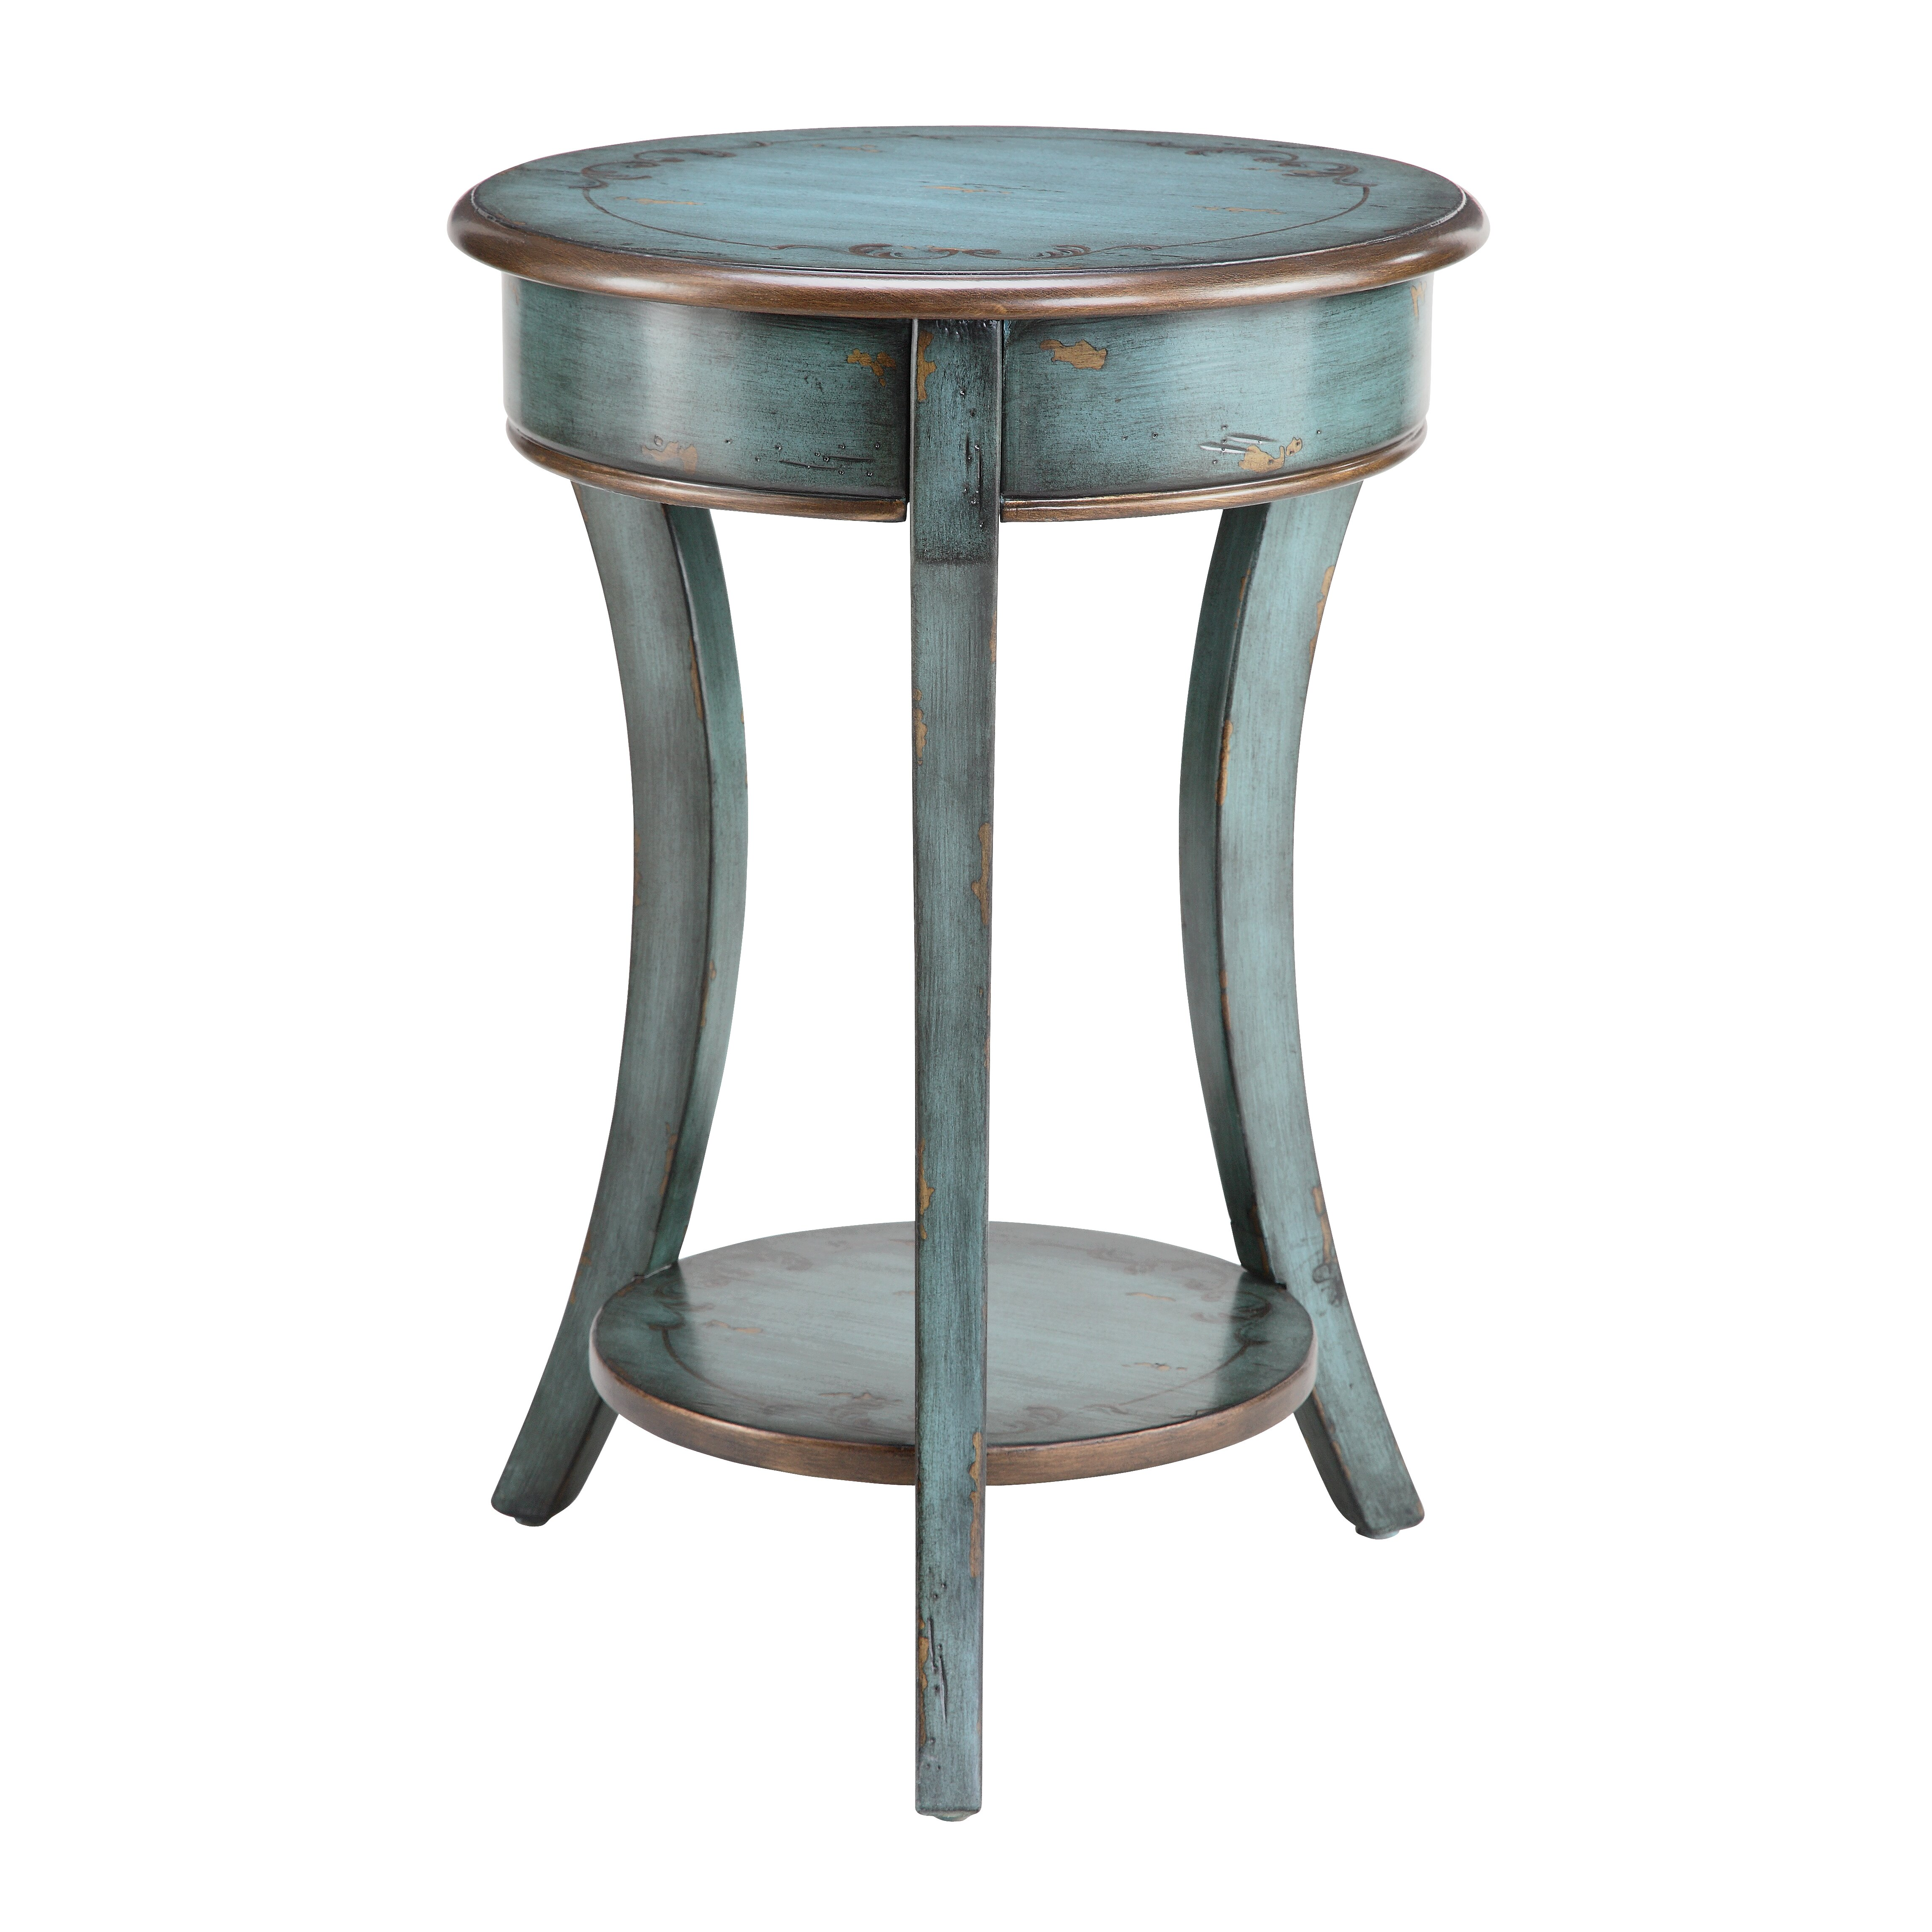 Stein world painted treasures curved legs round accent for Round side table